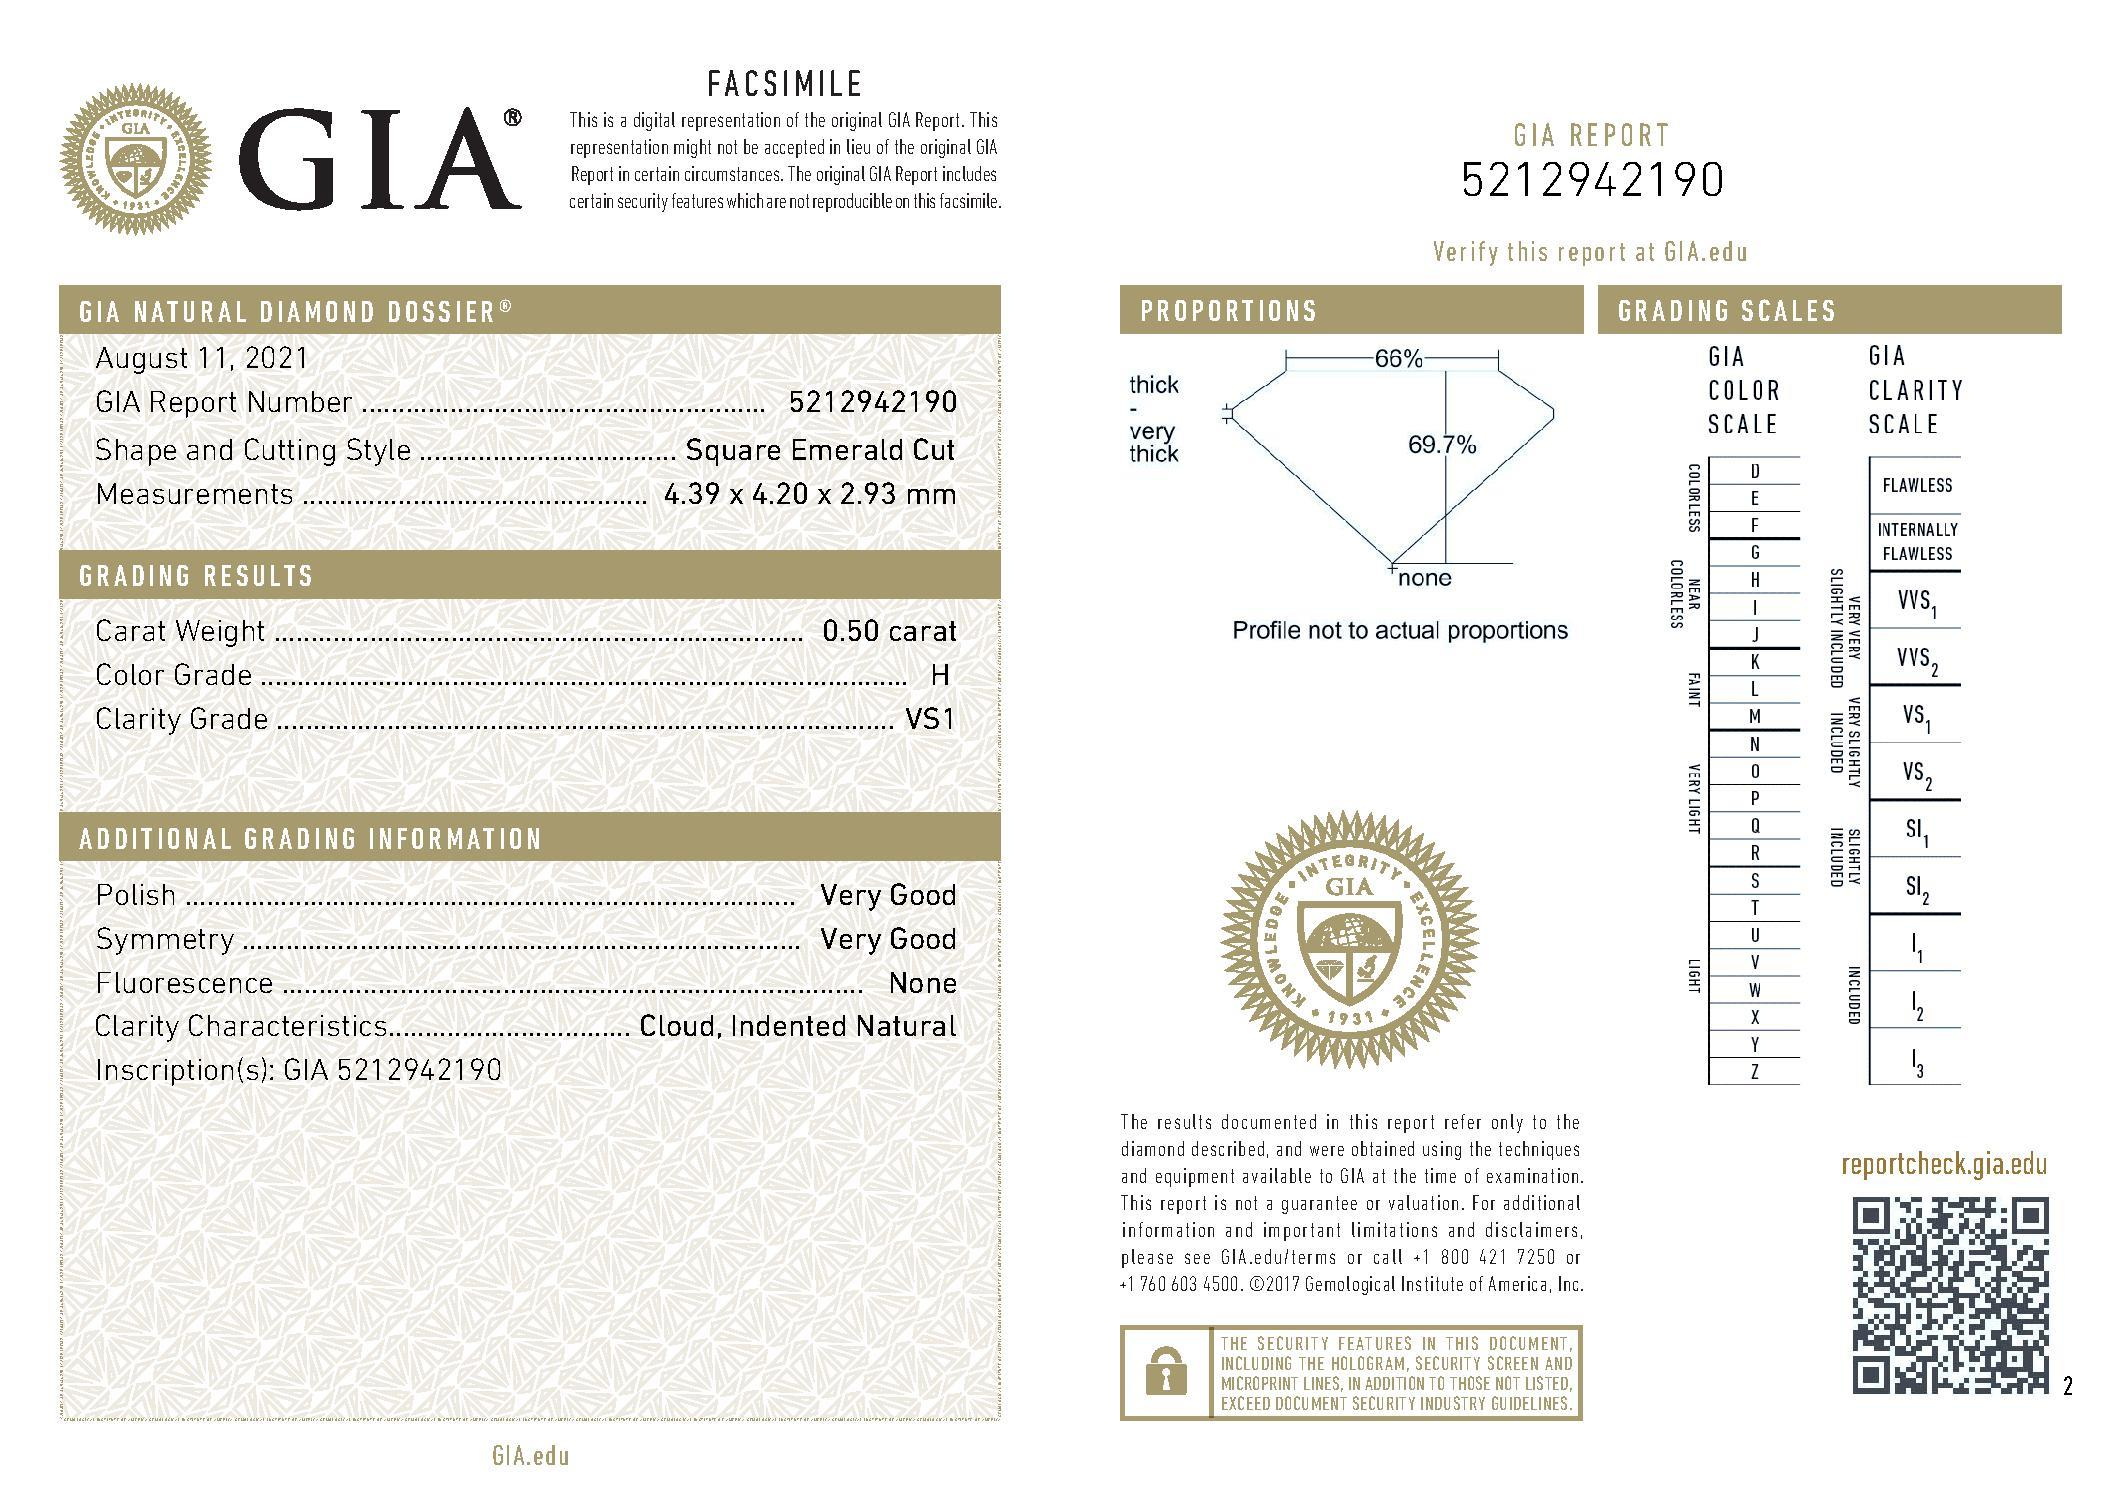 This is a 0.50 carat asscher shape, H color, VS1 clarity natural diamond accompanied by a GIA grading report.